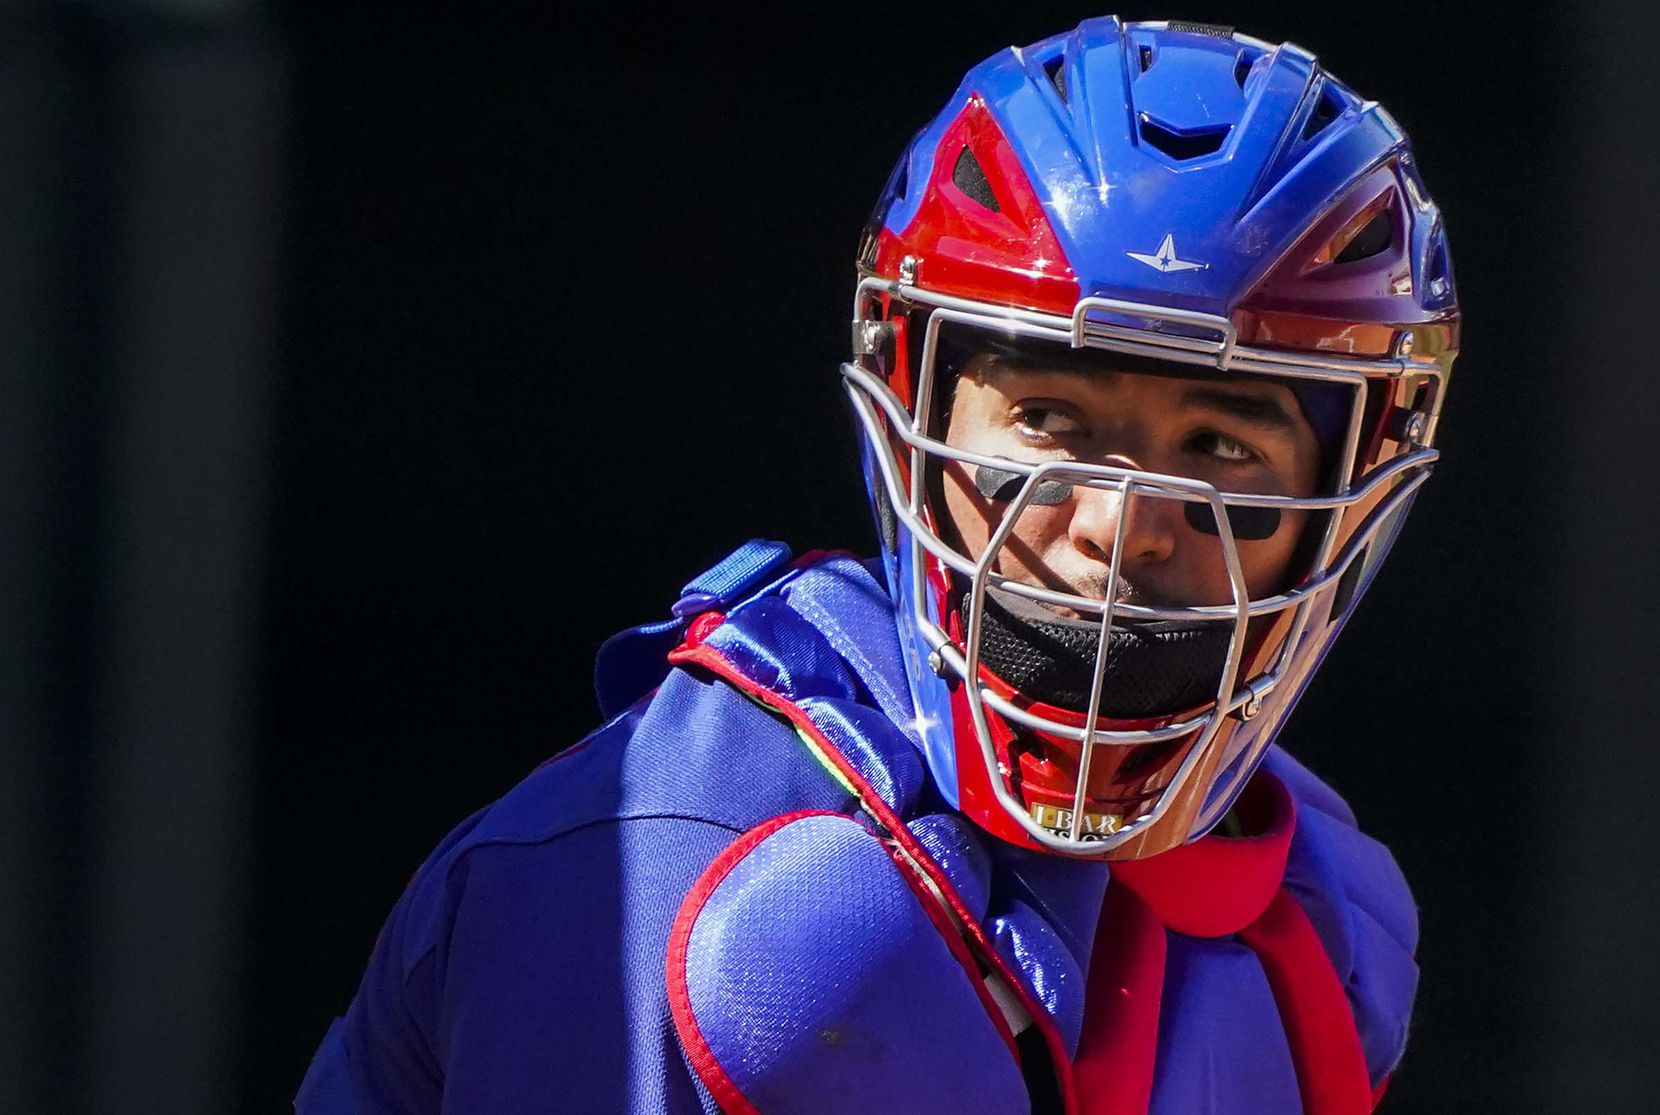 Texas Rangers catcher Jose Trevino looks to the dugout for a sign during the third inning of a spring training game against the San Francisco Giants at Surprise Stadium on Monday, March 1, 2021, in Surprise, Ariz.